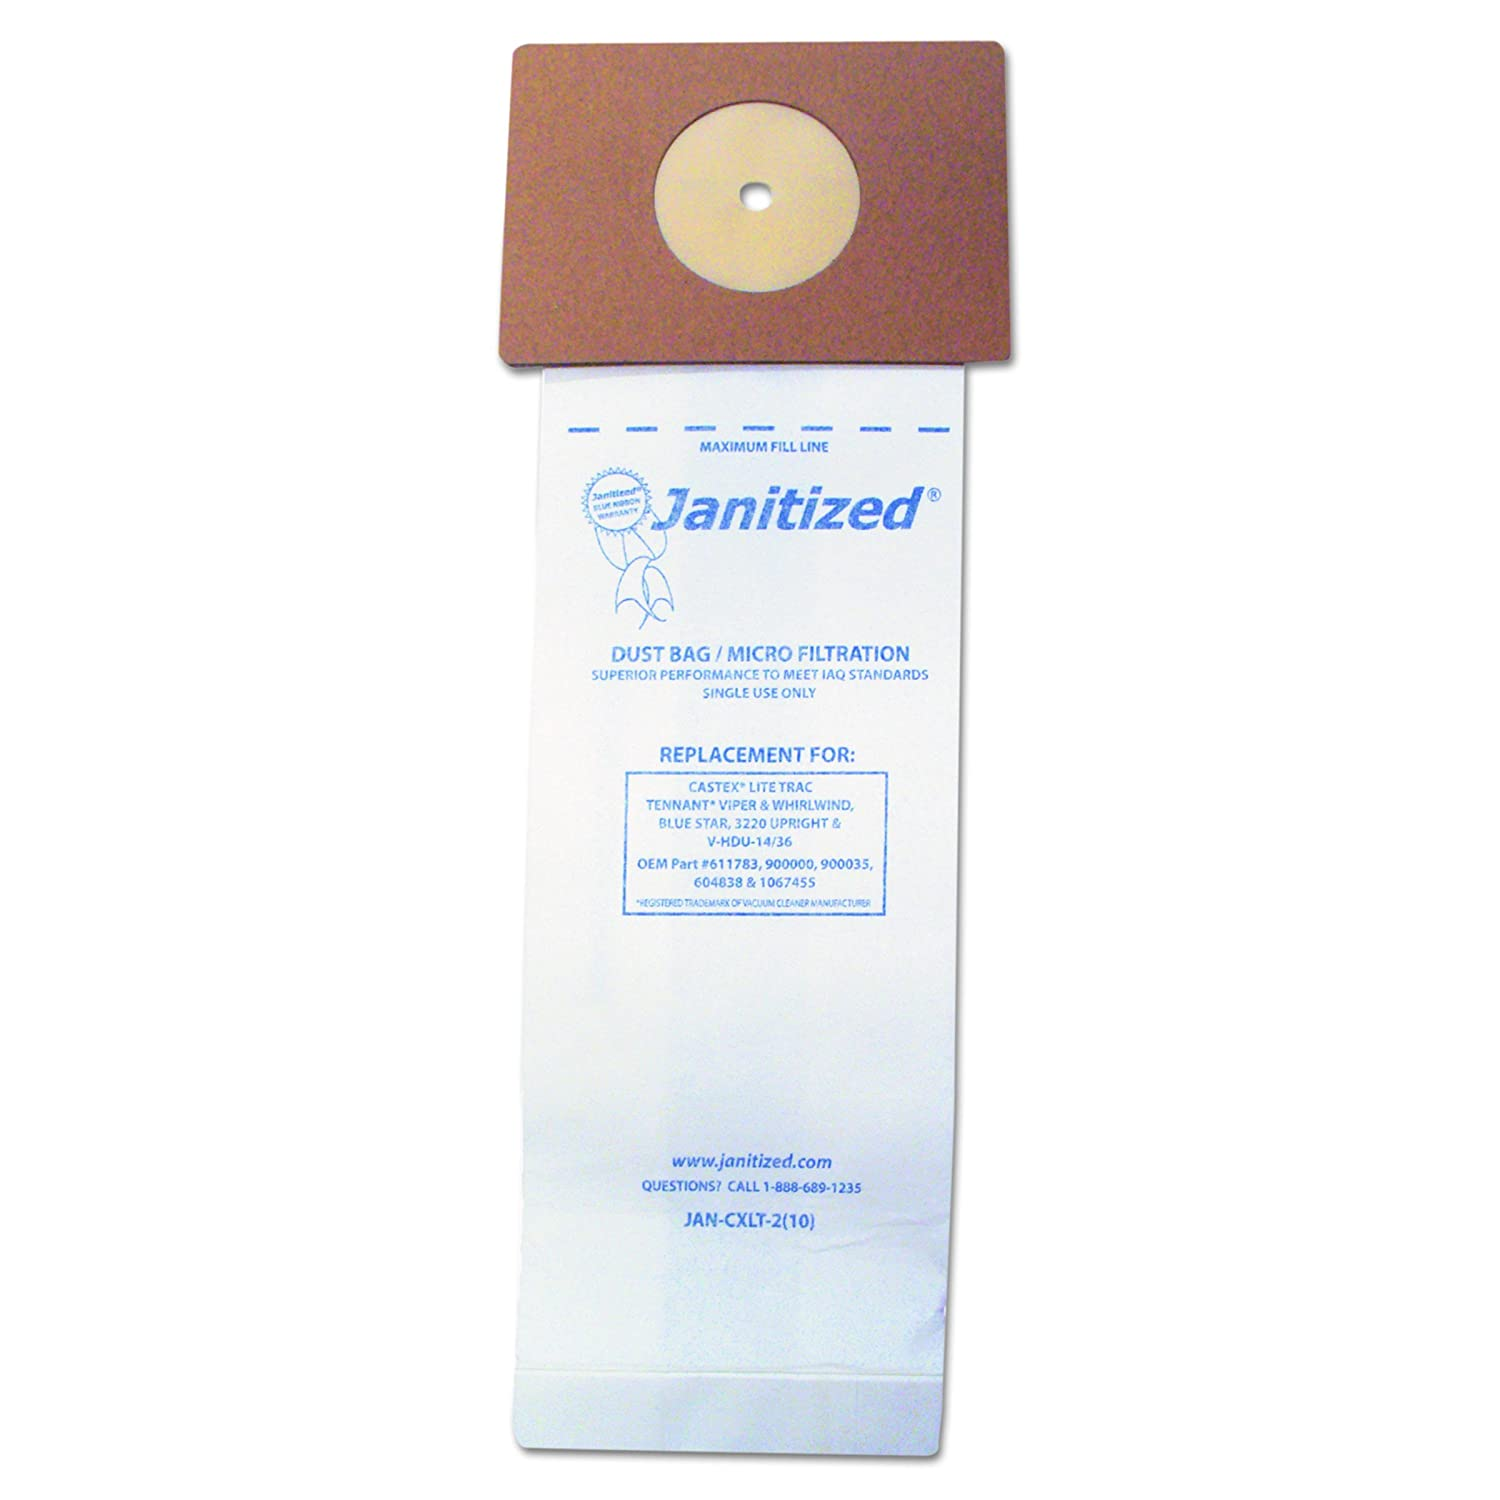 Janitized JANCXLT2 Vacuum Filter Bags Designed to Fit Nobles Lite Trac/Tennant Viper (Case of 100)